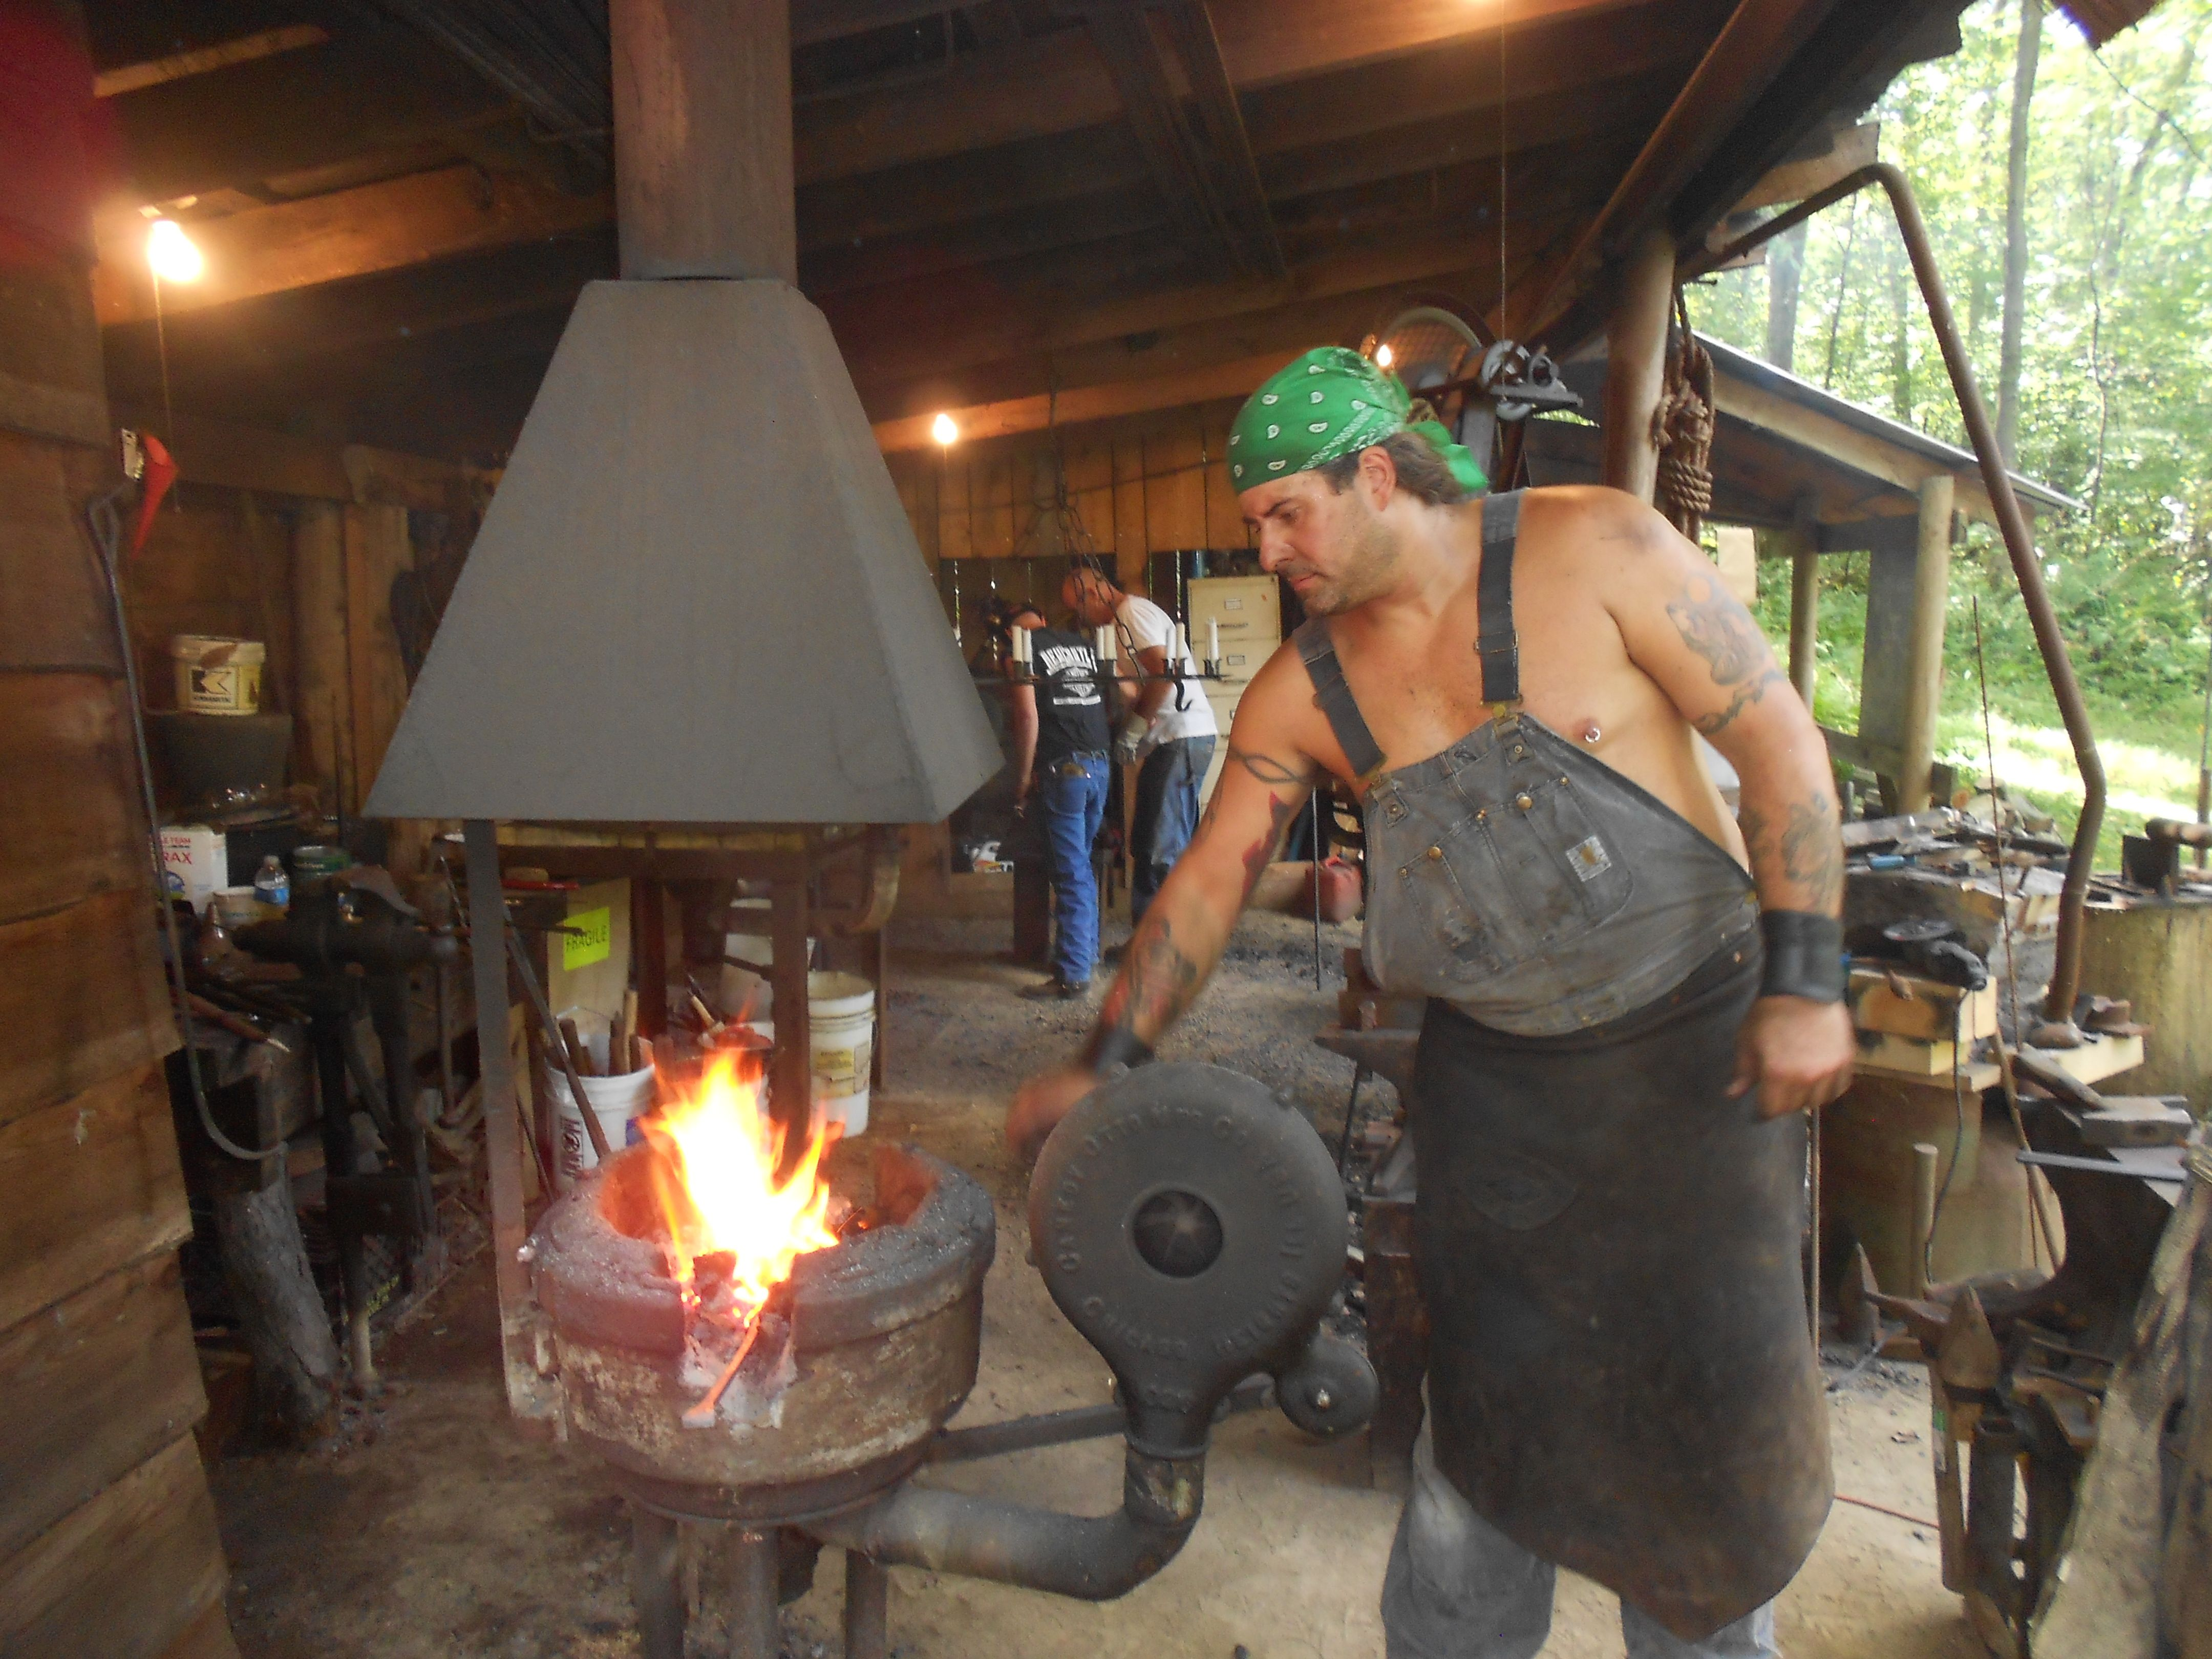 Hammer in my grandpa was a blacksmith making horseshoes for Craft in america forge